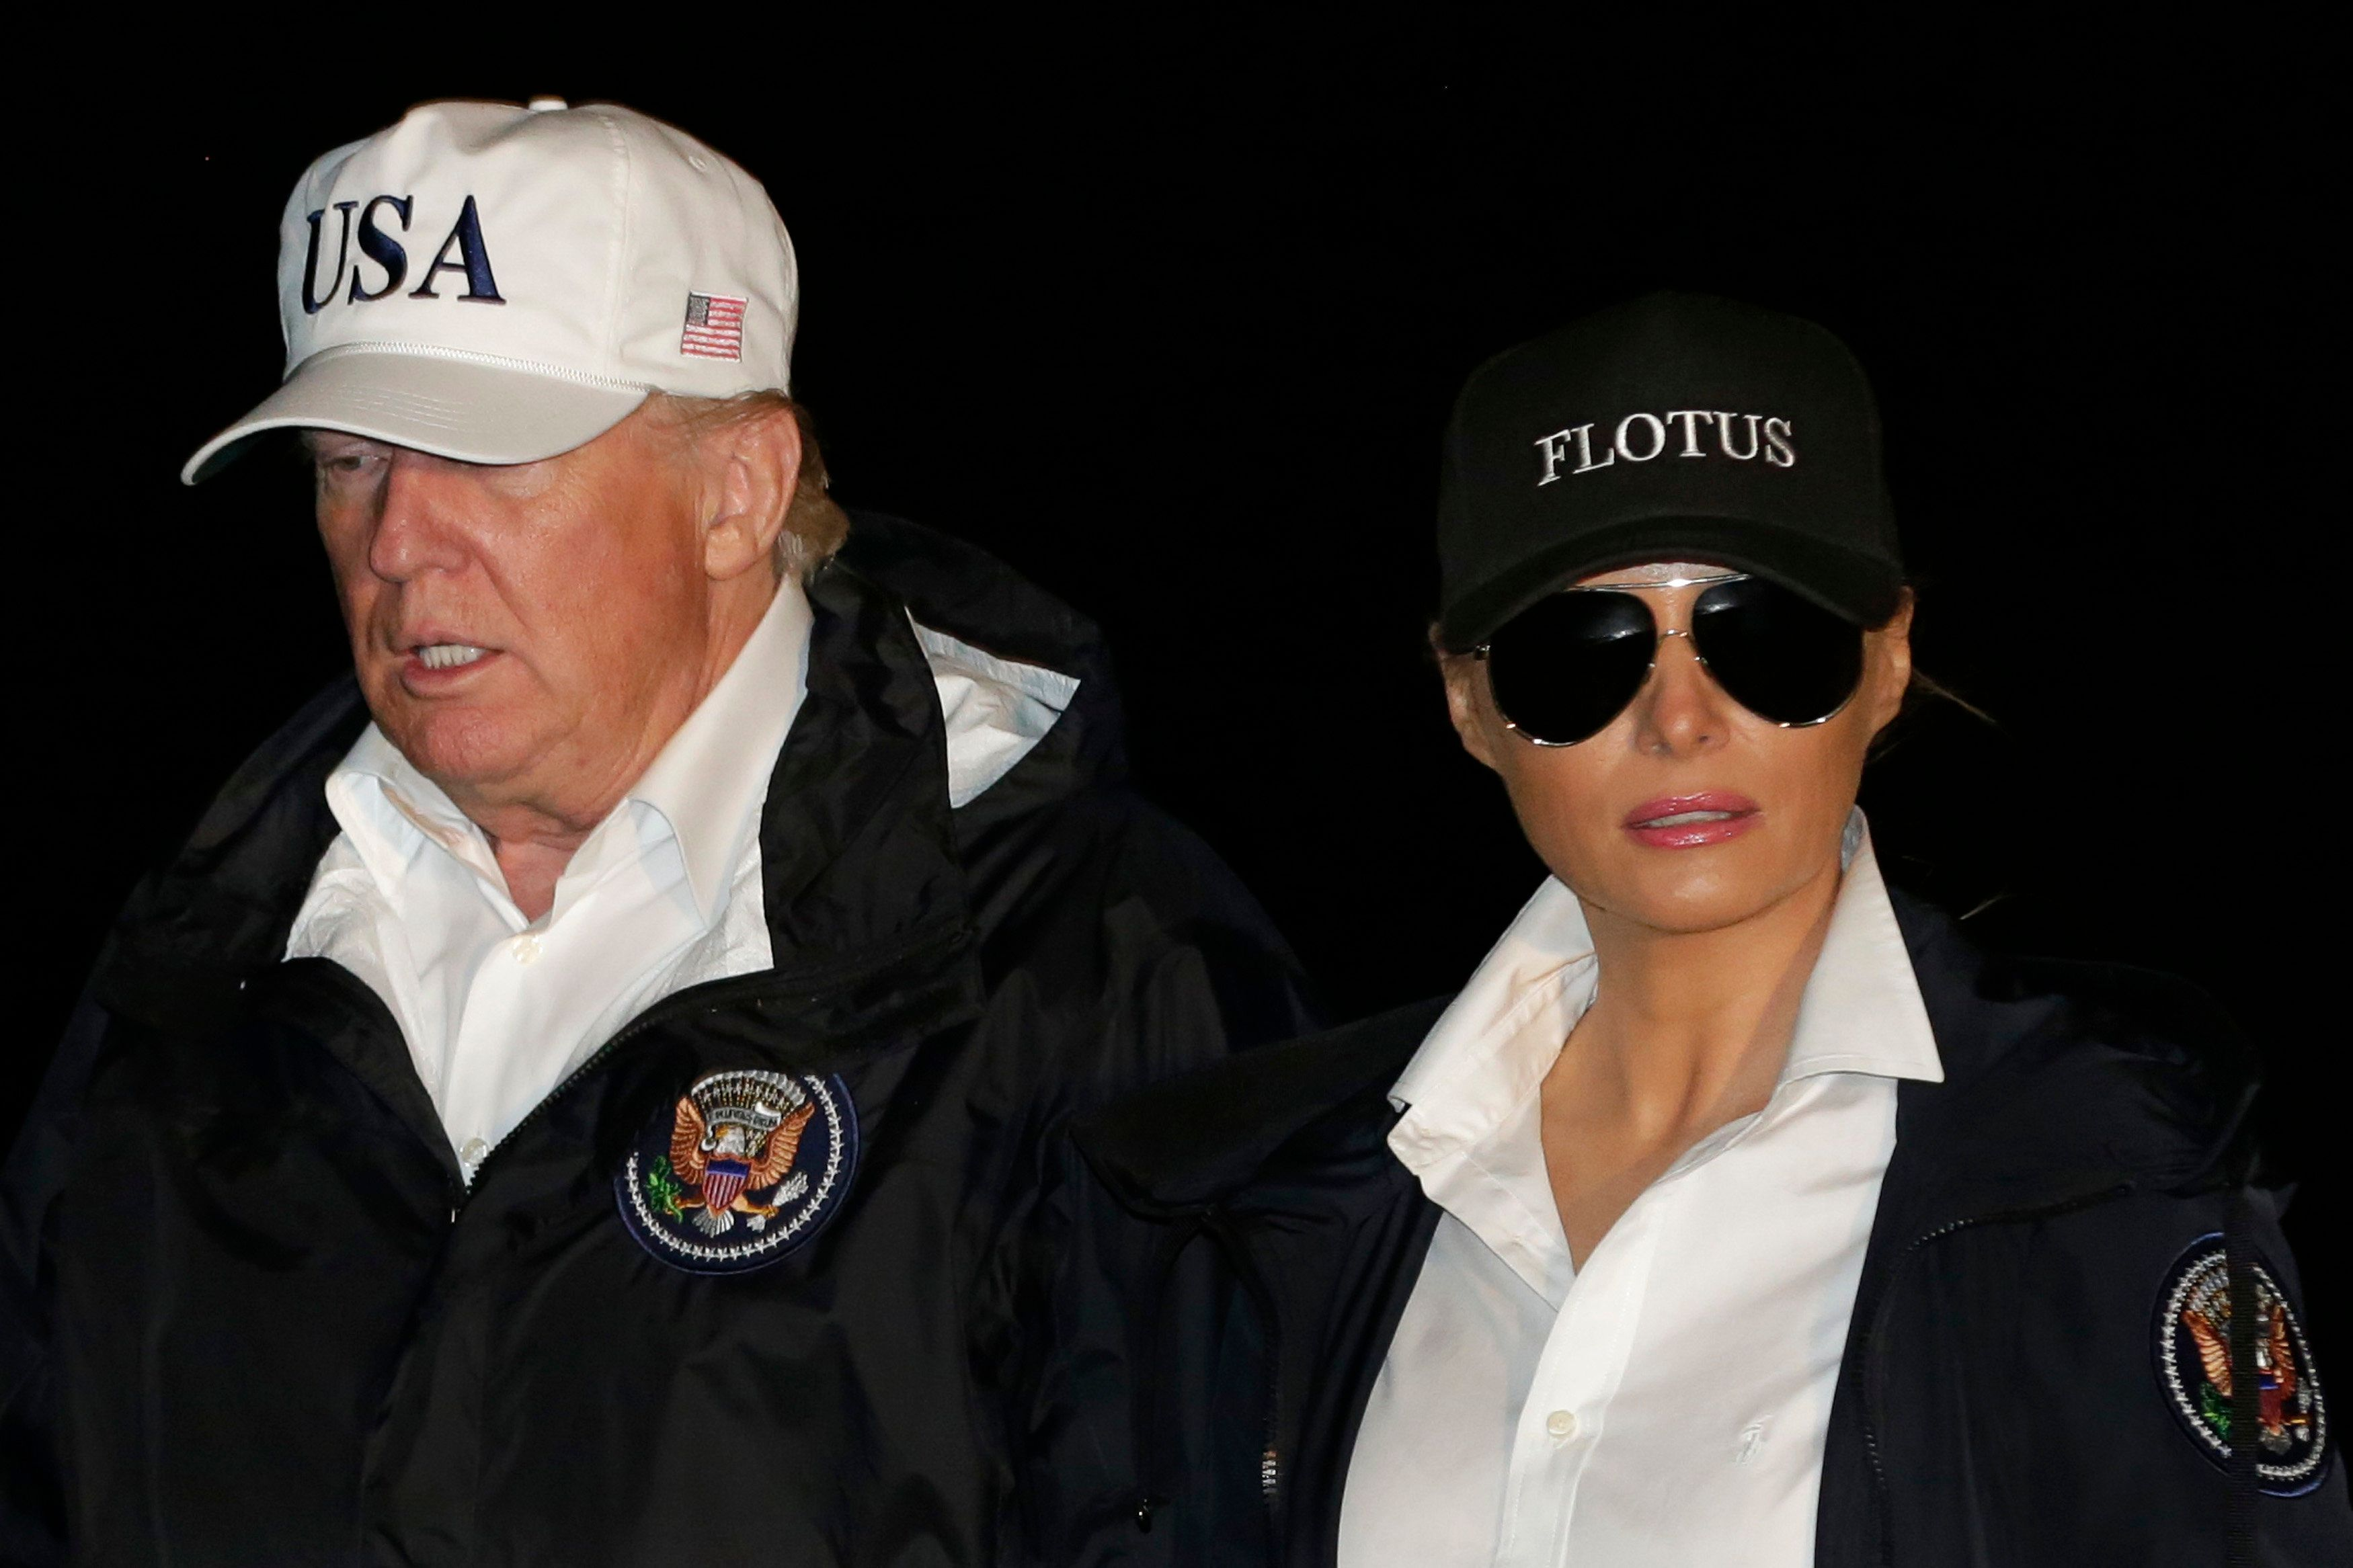 Forget Melania's Shoes - It's Donald's $40 Hat That Should Be Getting